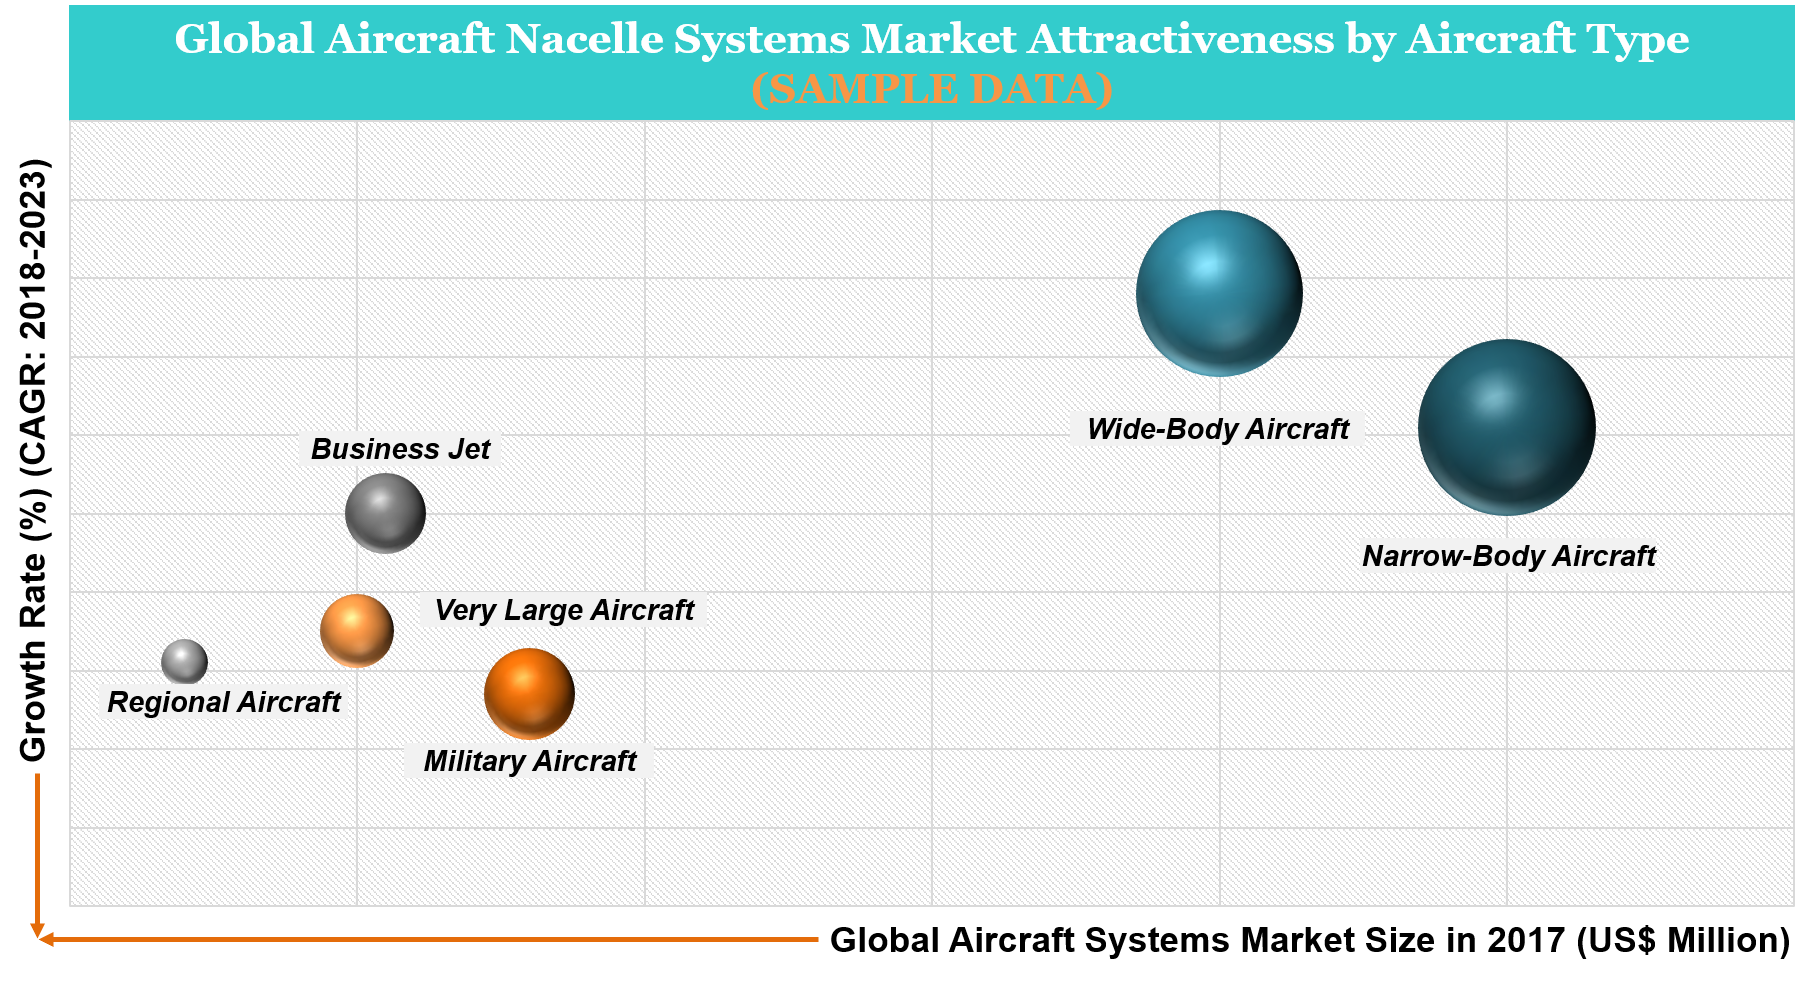 Aircraft Nacelle Systems Market Attractiveness